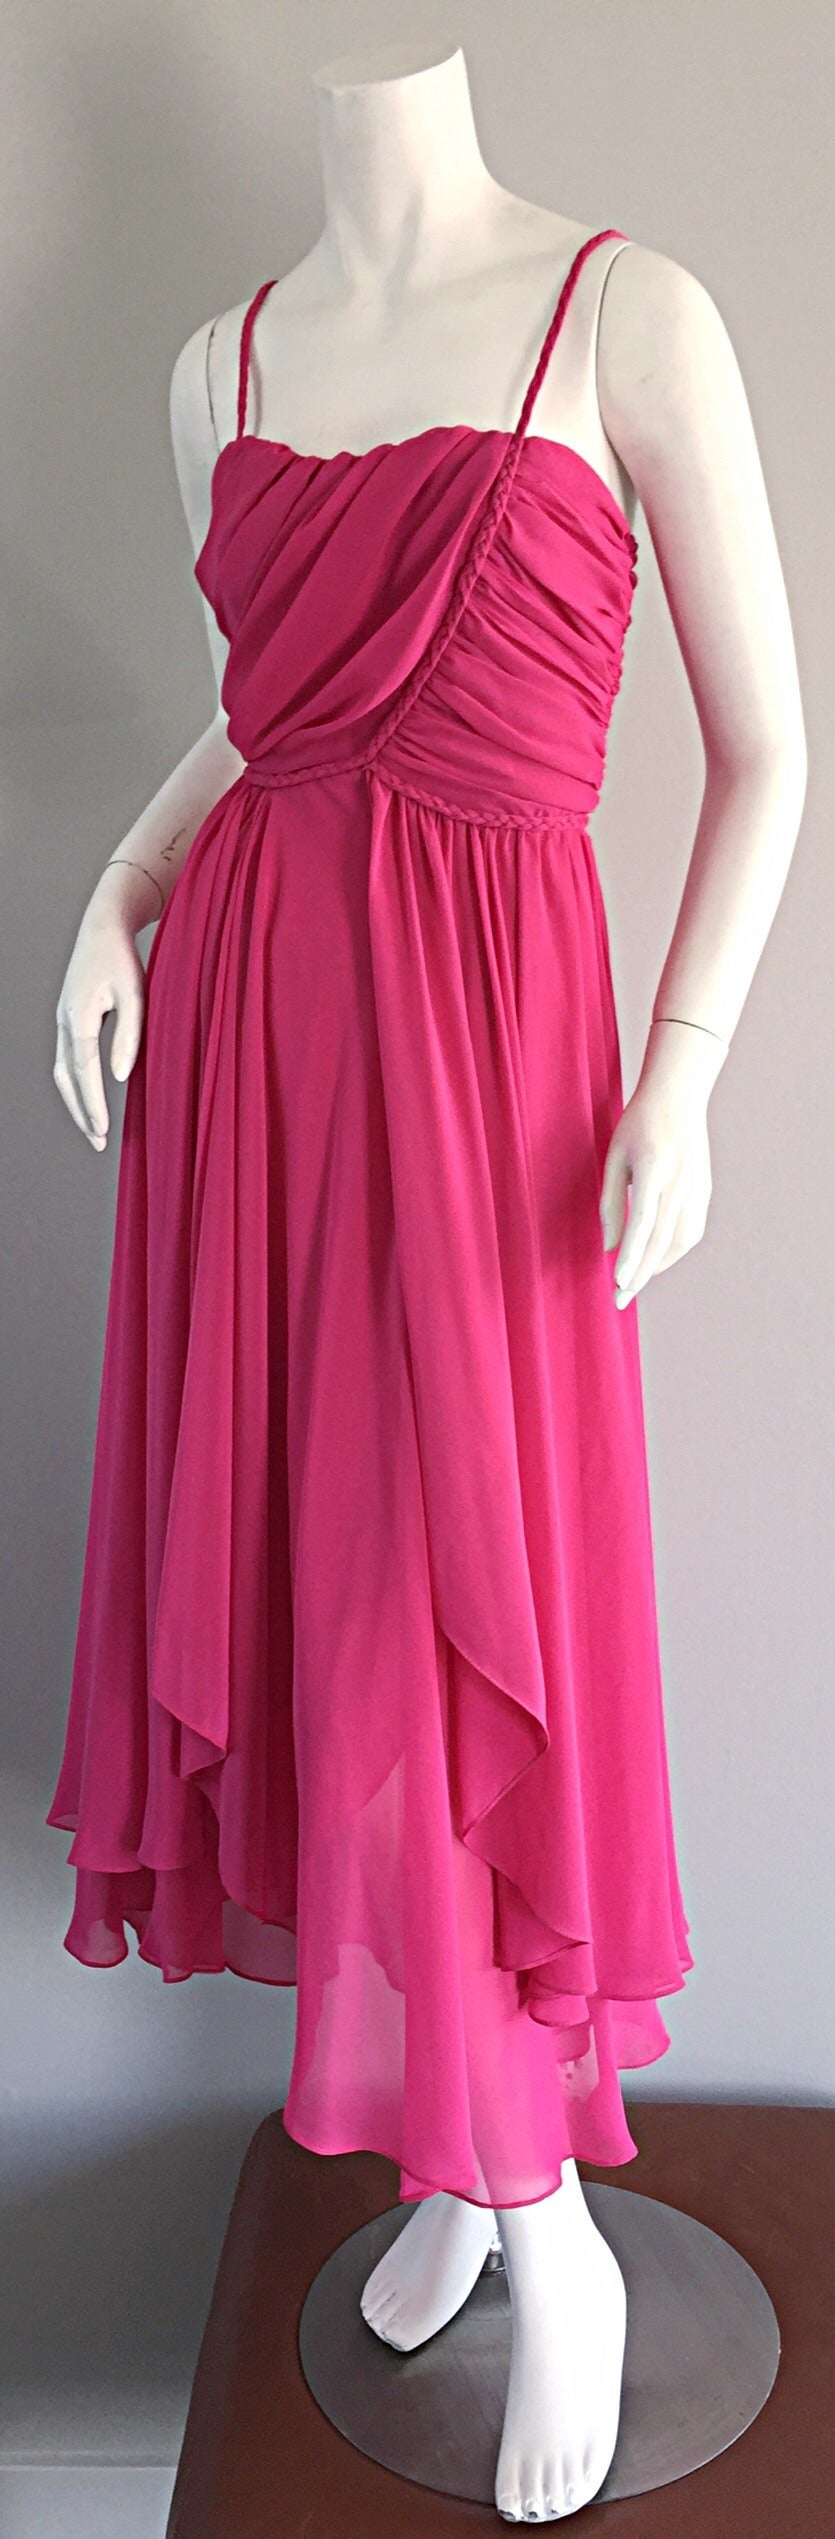 1970s Joy Stevens Hot Pink Vintage Flowy Grecian Disco Dress w/ Braided Details For Sale 2